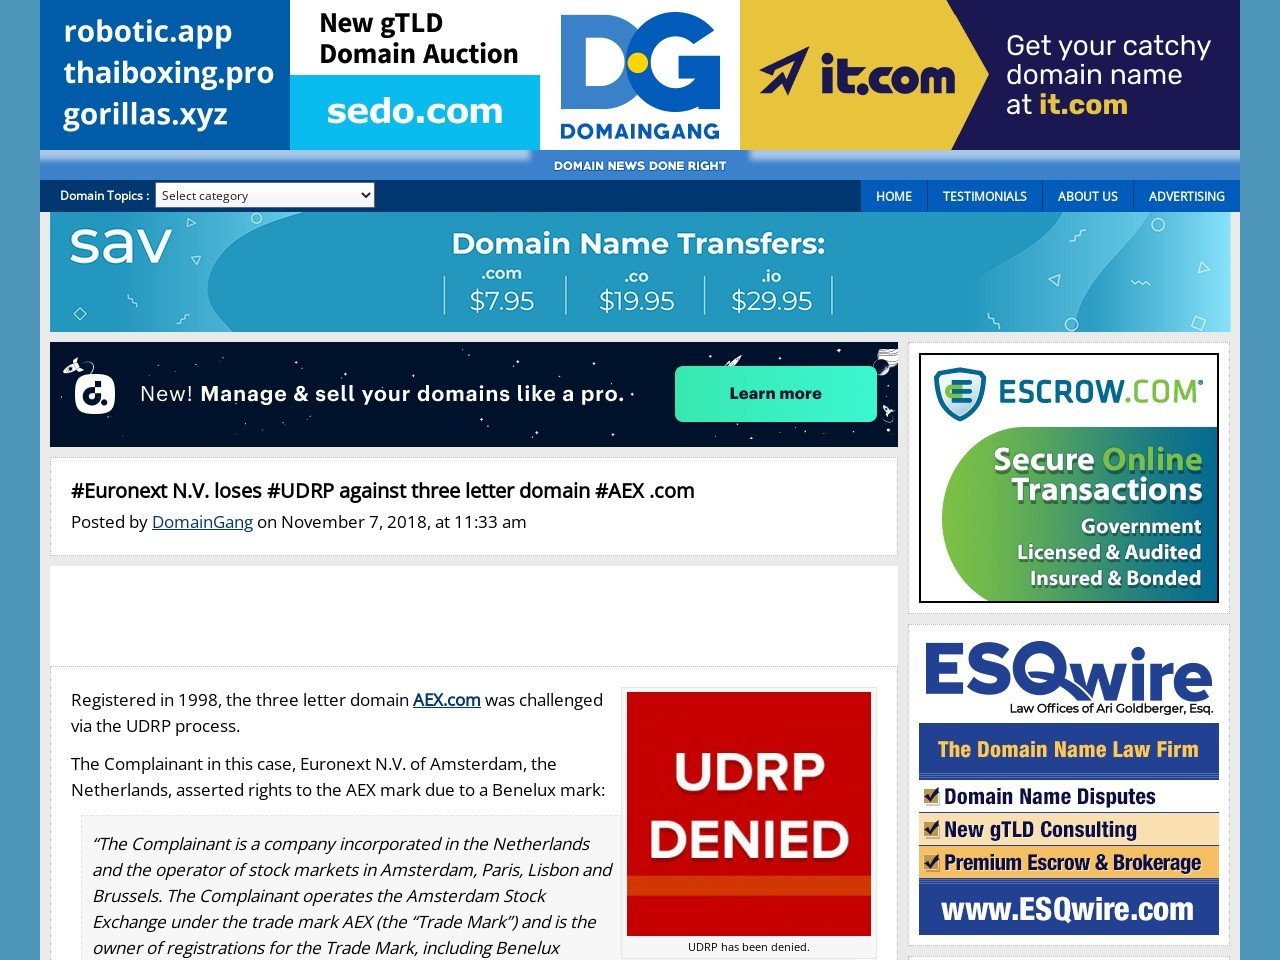 #Euronext N.V. loses #UDRP against three letter domain #AEX .com